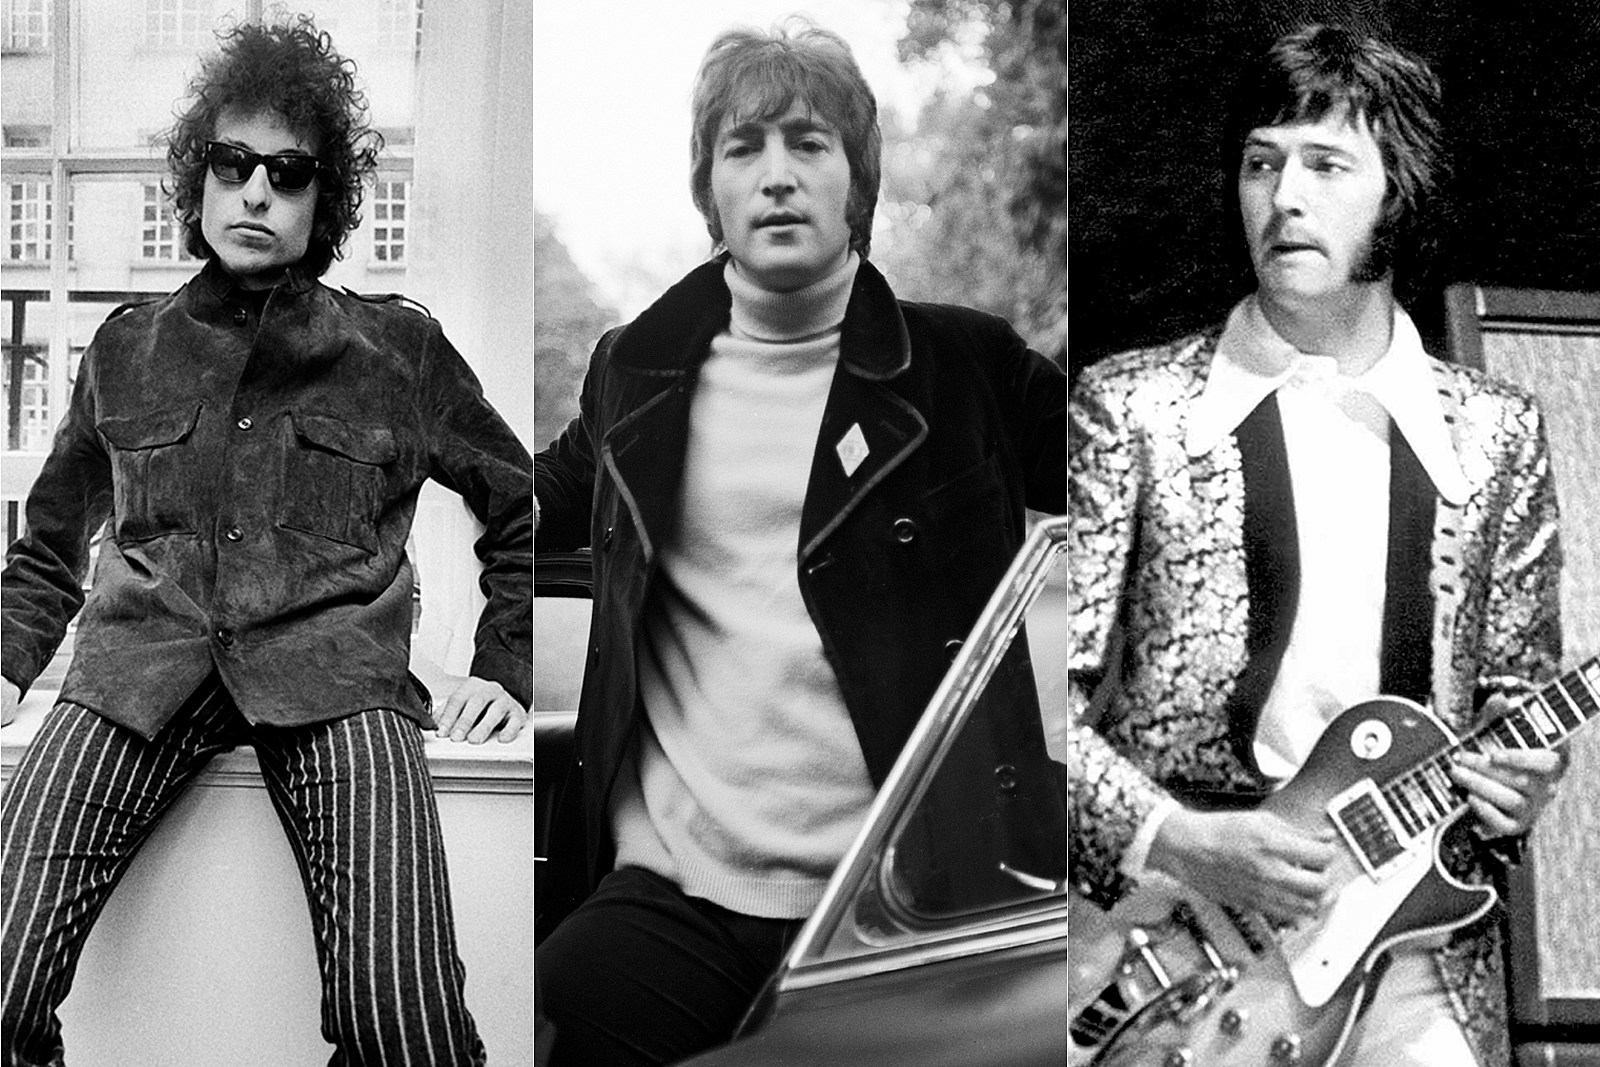 July 29, 1966, Marked New Eras for Bob Dylan, Beatles and Cream